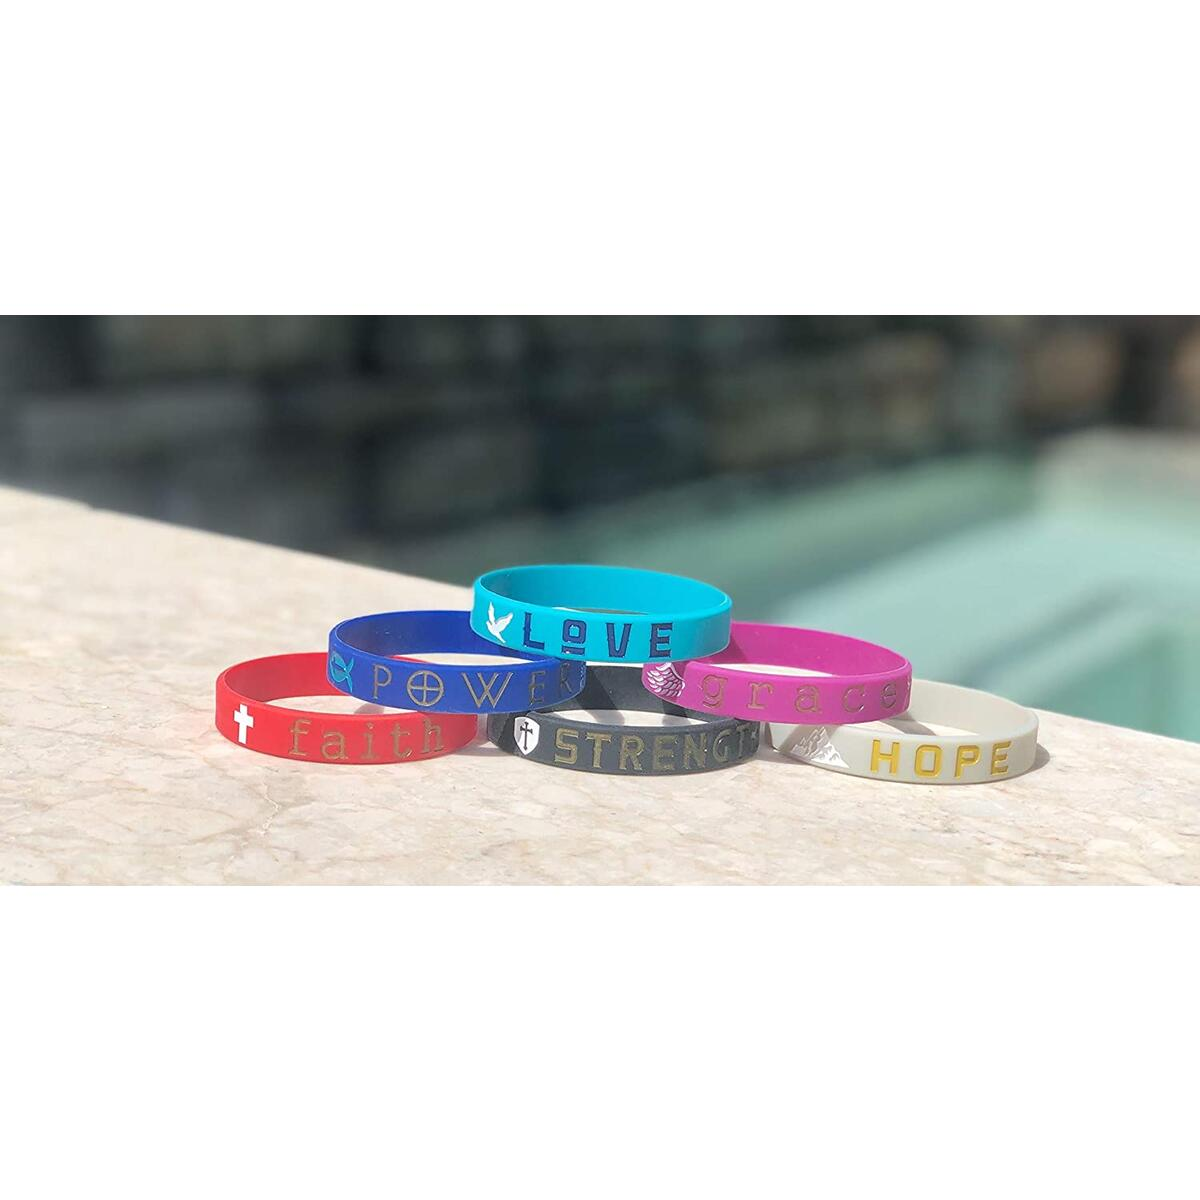 (12-Pack) Religious Bible Bracelets, Inspirational Christian Gifts Multi-Pack - Faith Hope Love Power Grace Strength - Wholesale Bulk Pack Silicone Rubber Wristbands for Religious Party Favors